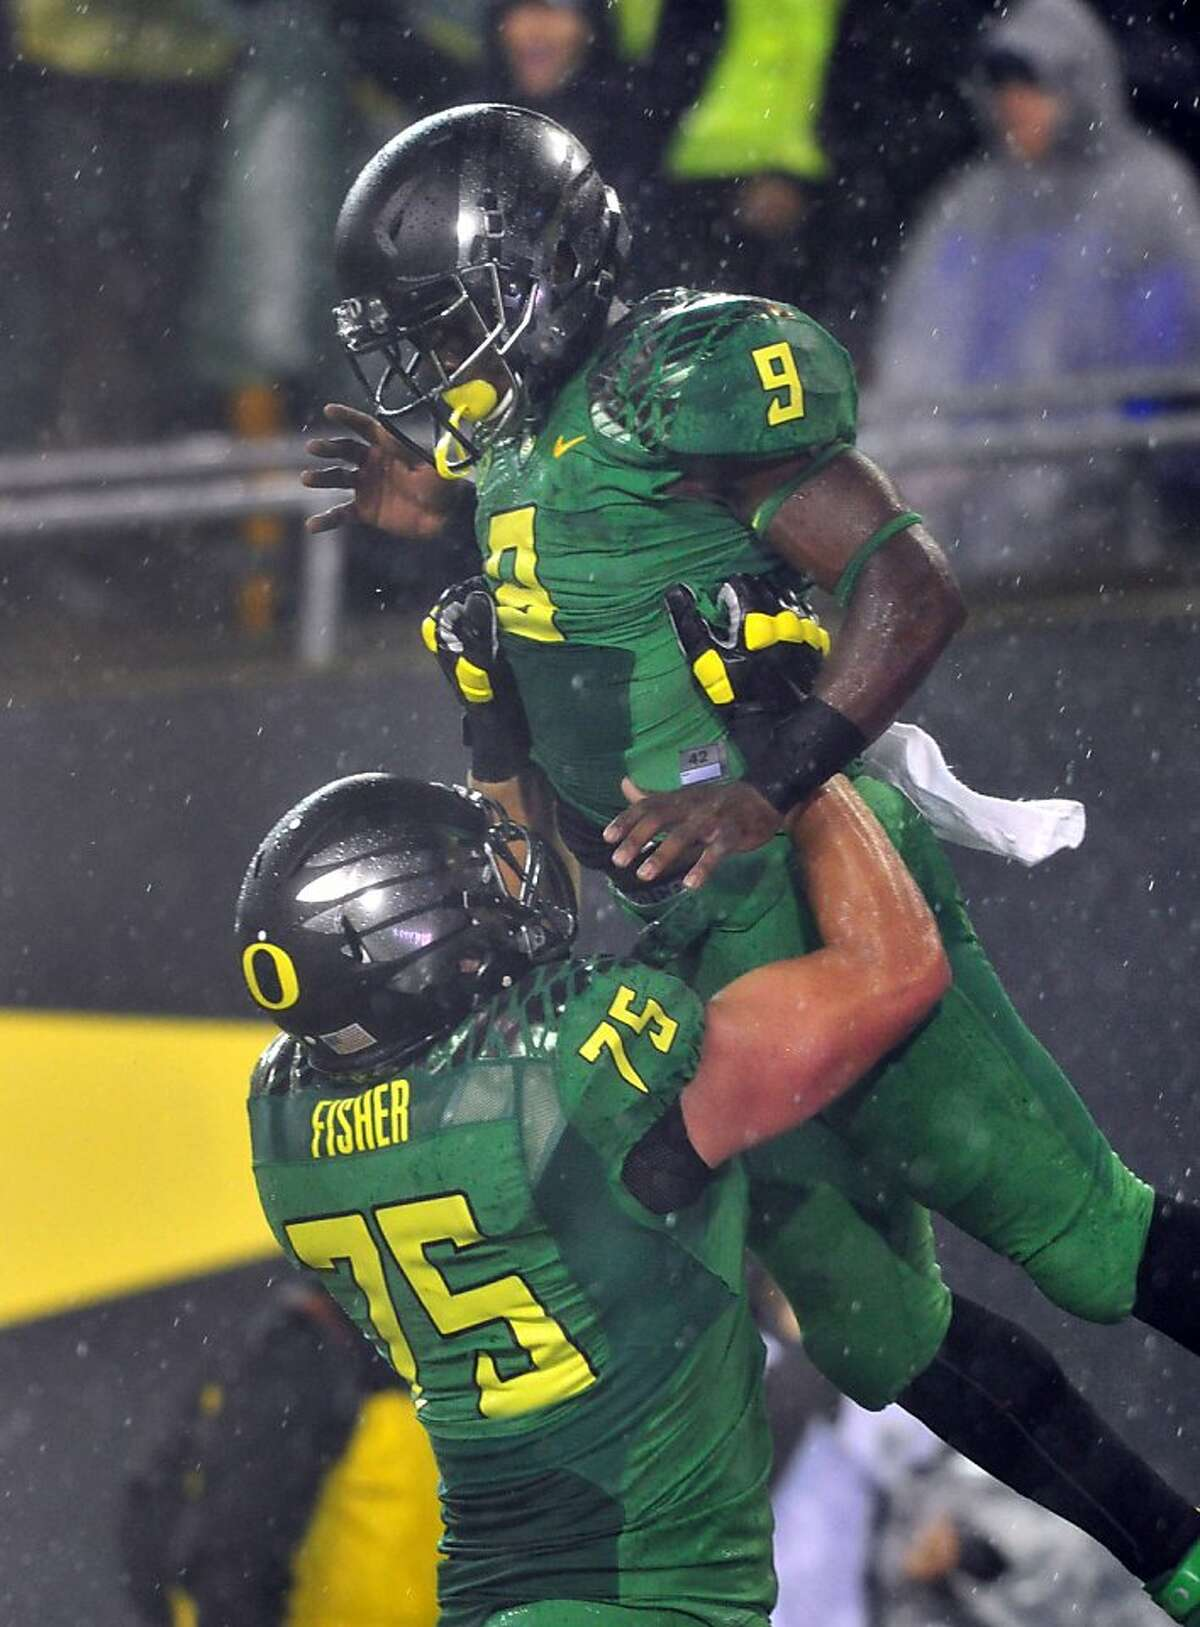 EUGENE, OR - SEPTEMBER 28: Running back Byron Marshall #9 of the Oregon Ducks celebrates with offensive linesman Jake Fisher #75 of the Ducks after scoring a touchdown during the first quarter of the game against the California Golden Bears at Autzen Stadium on September 28, 2013 in Eugene, Oregon. (Photo by Steve Dykes/Getty Images)